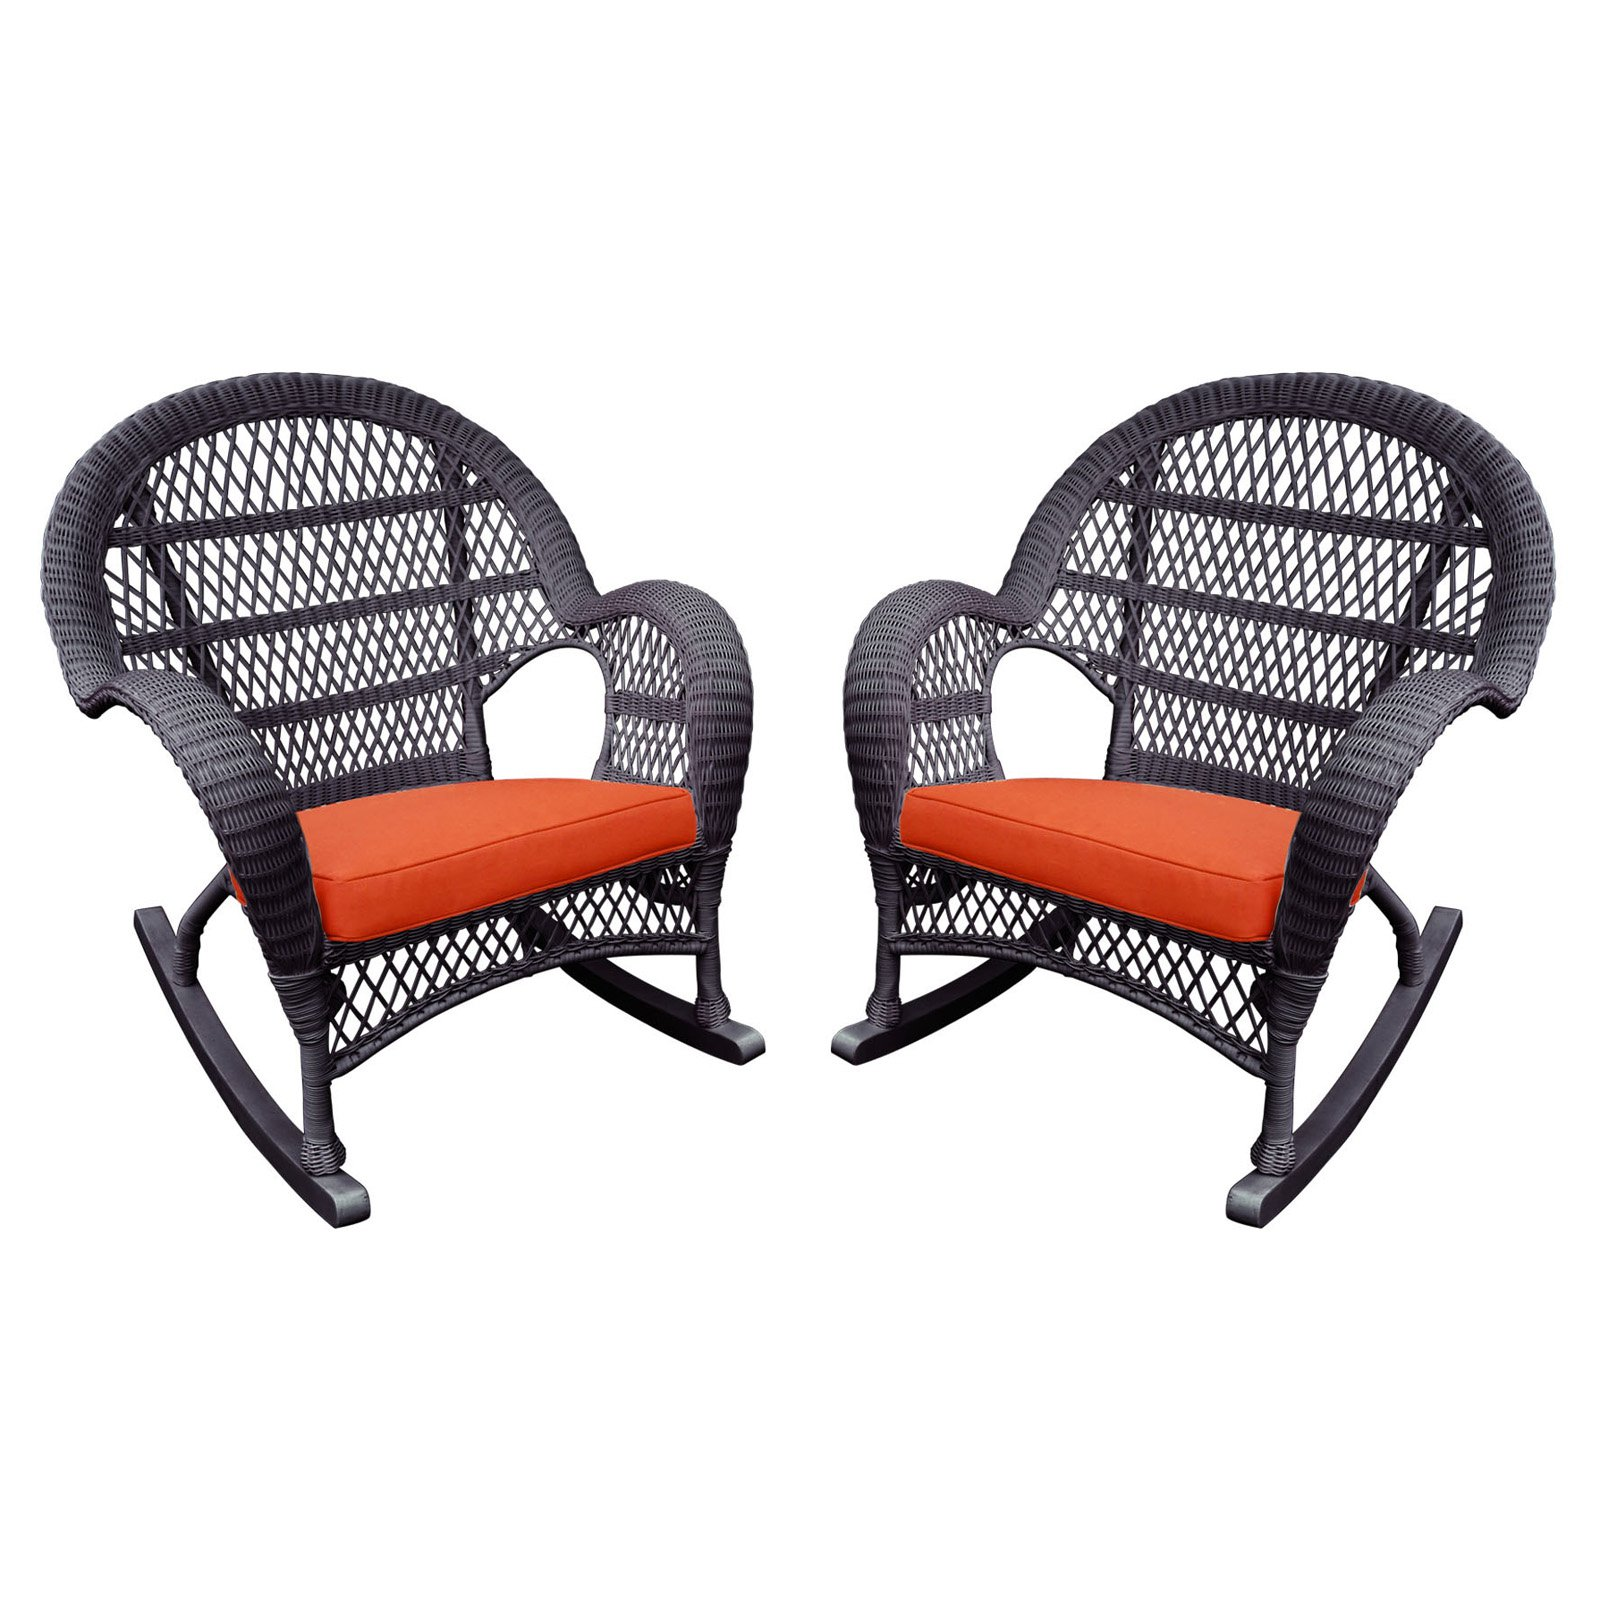 Jeco Santa Maria Wicker Patio Rockers with Optional Cushion - Set of 2